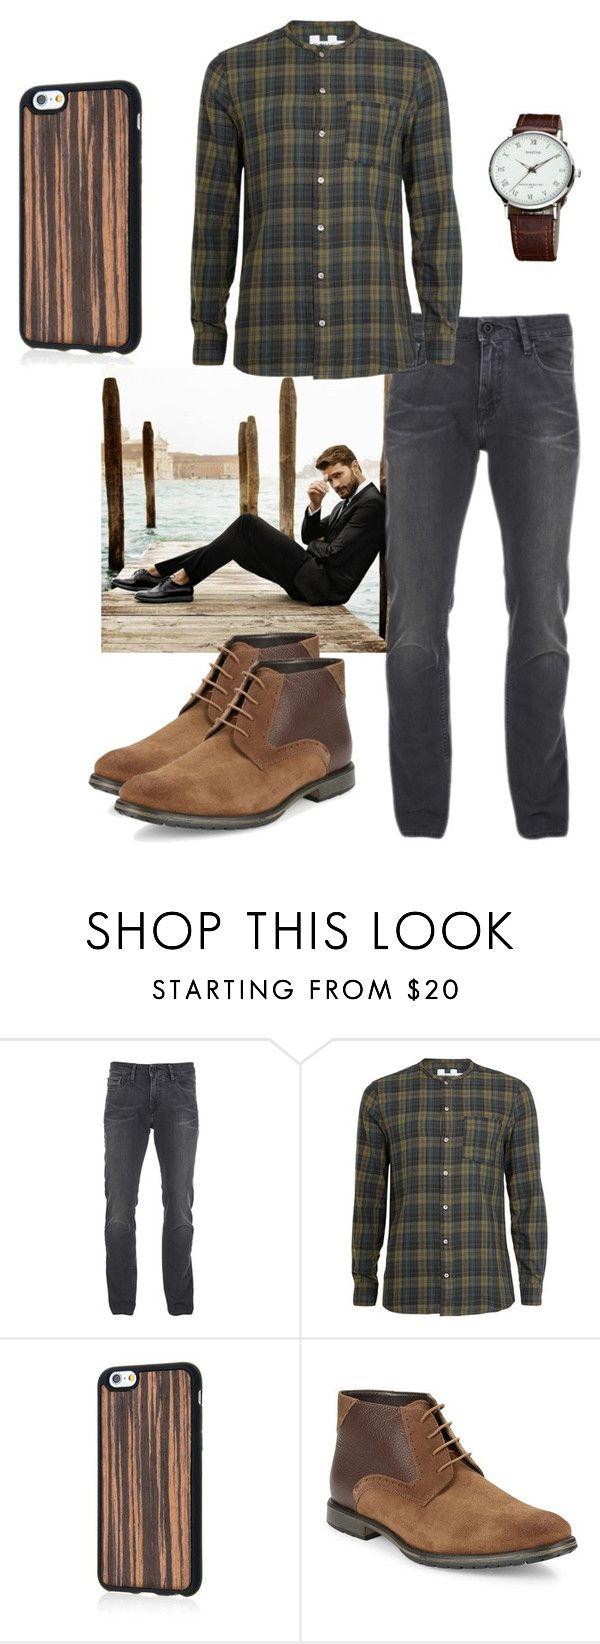 """Rustic"" by empirecase ❤ liked on Polyvore featuring Calvin Klein, Topman, BLACK BROWN 1826, rustic, men's fashion and menswear"